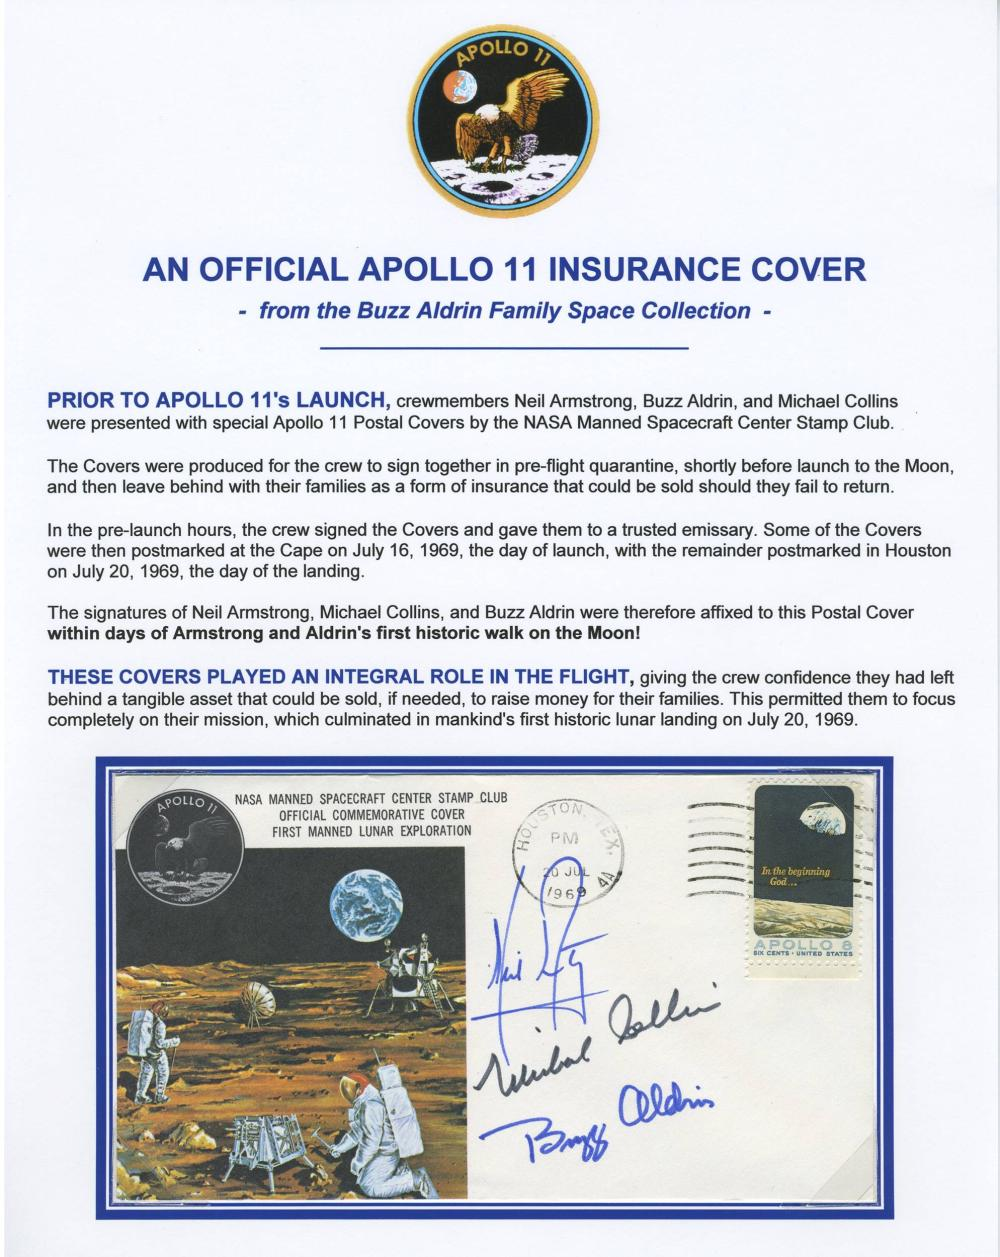 Apollo XI Insurance Cover Signed by Armstrong, Aldrin & Collins, From Buzz Aldrin Family Space Collection